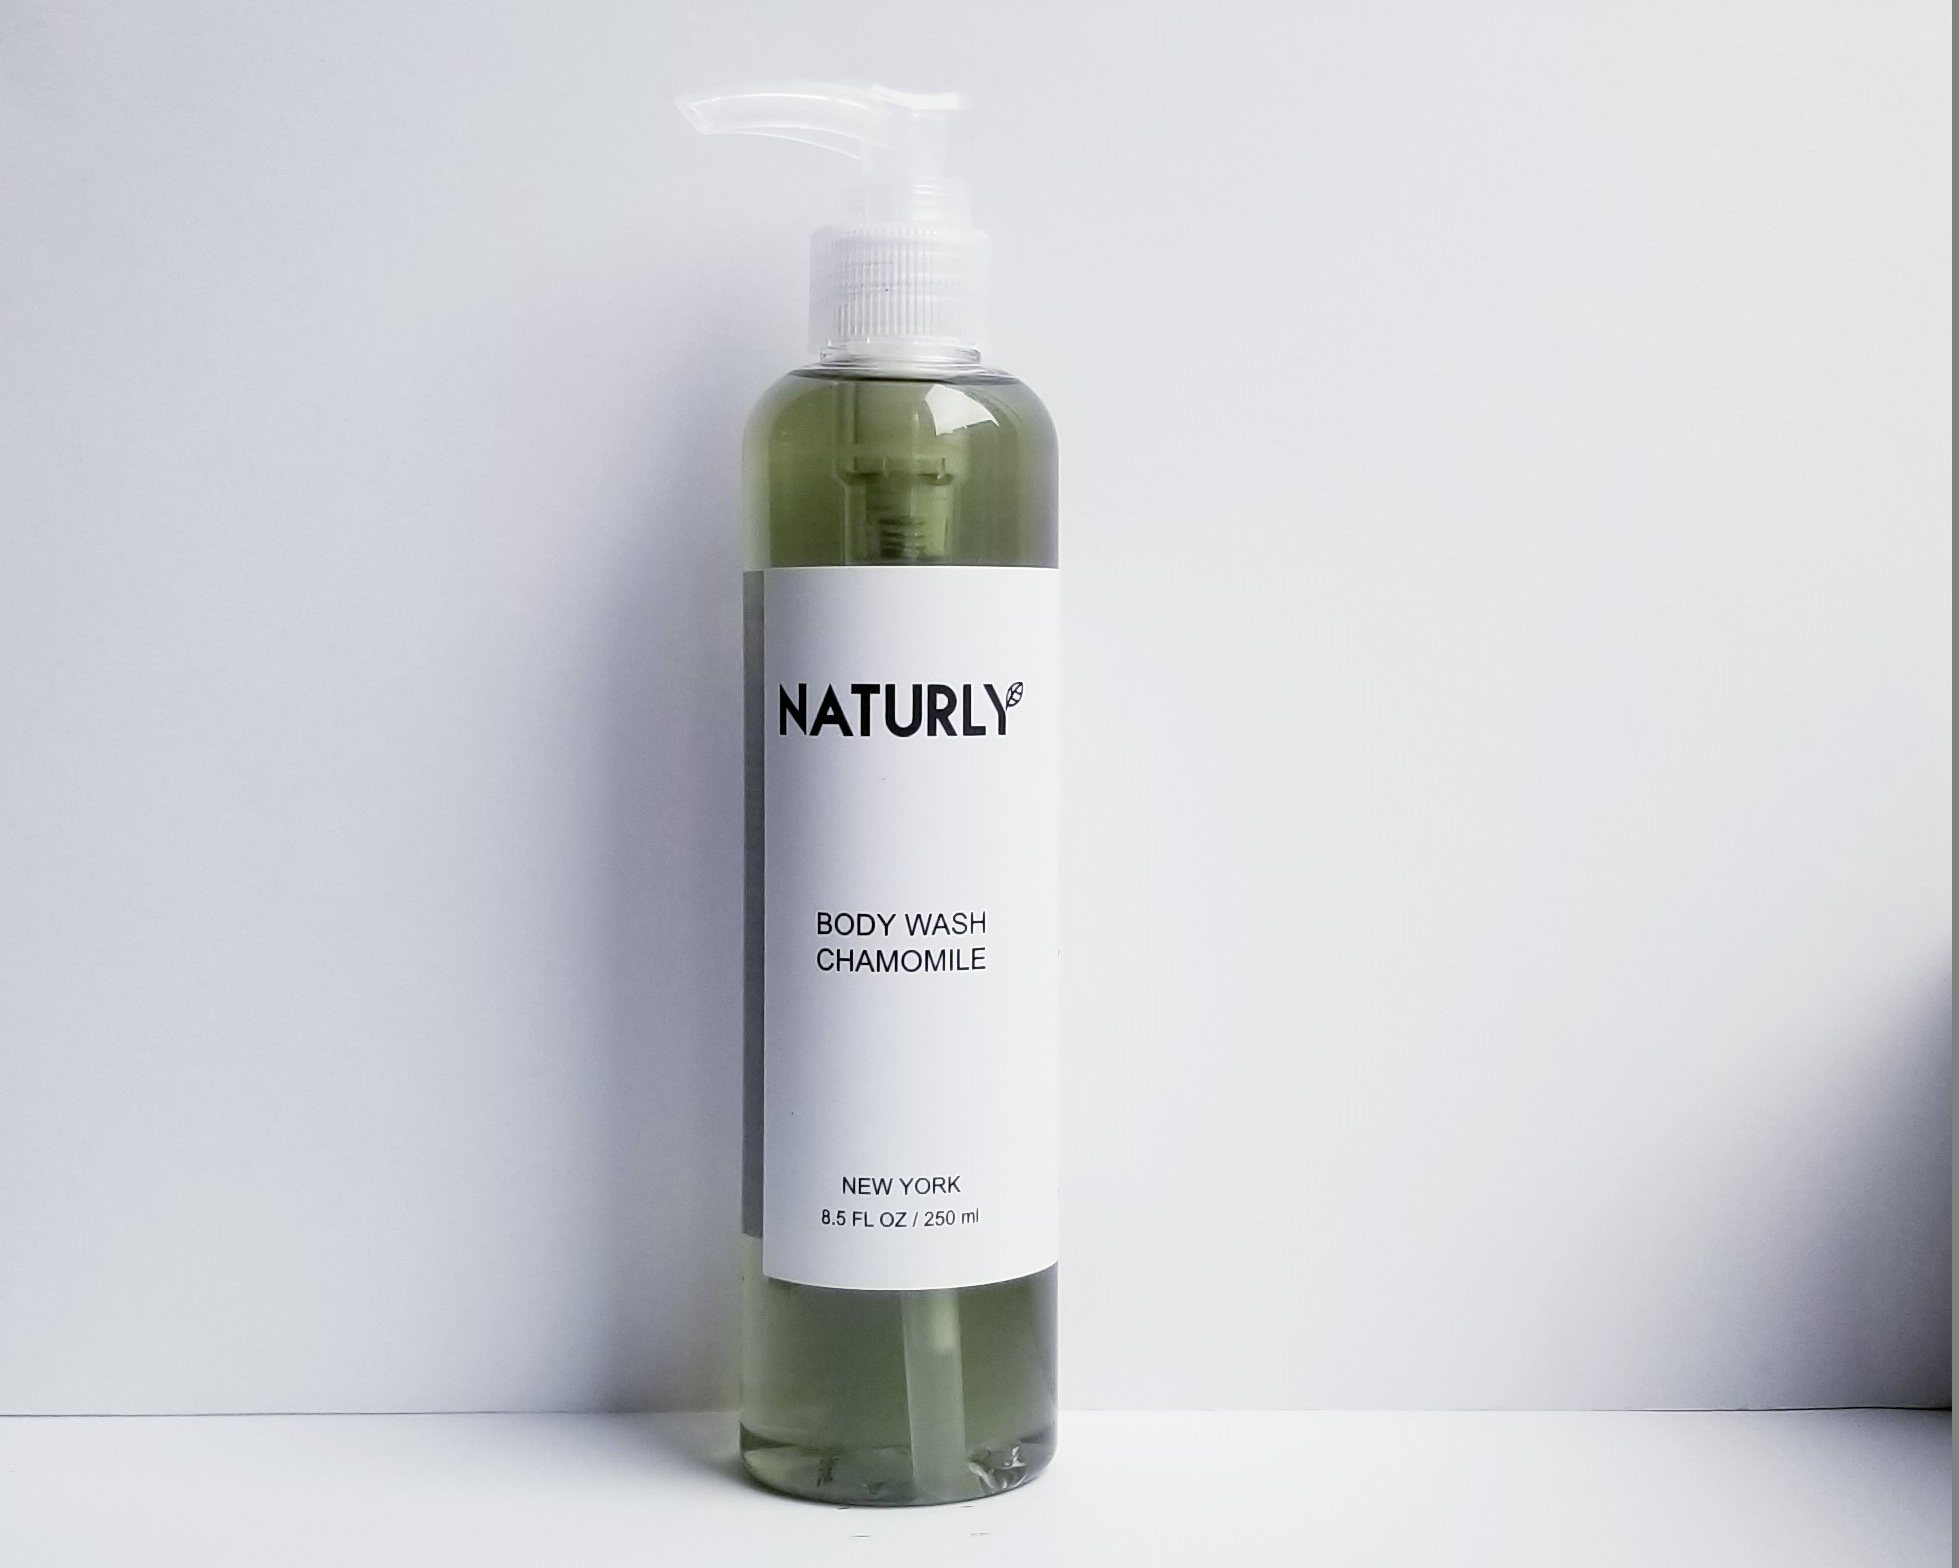 Body Wash with chamomile & lavendar oils; anti-oxidant chlorophyl extract - $28